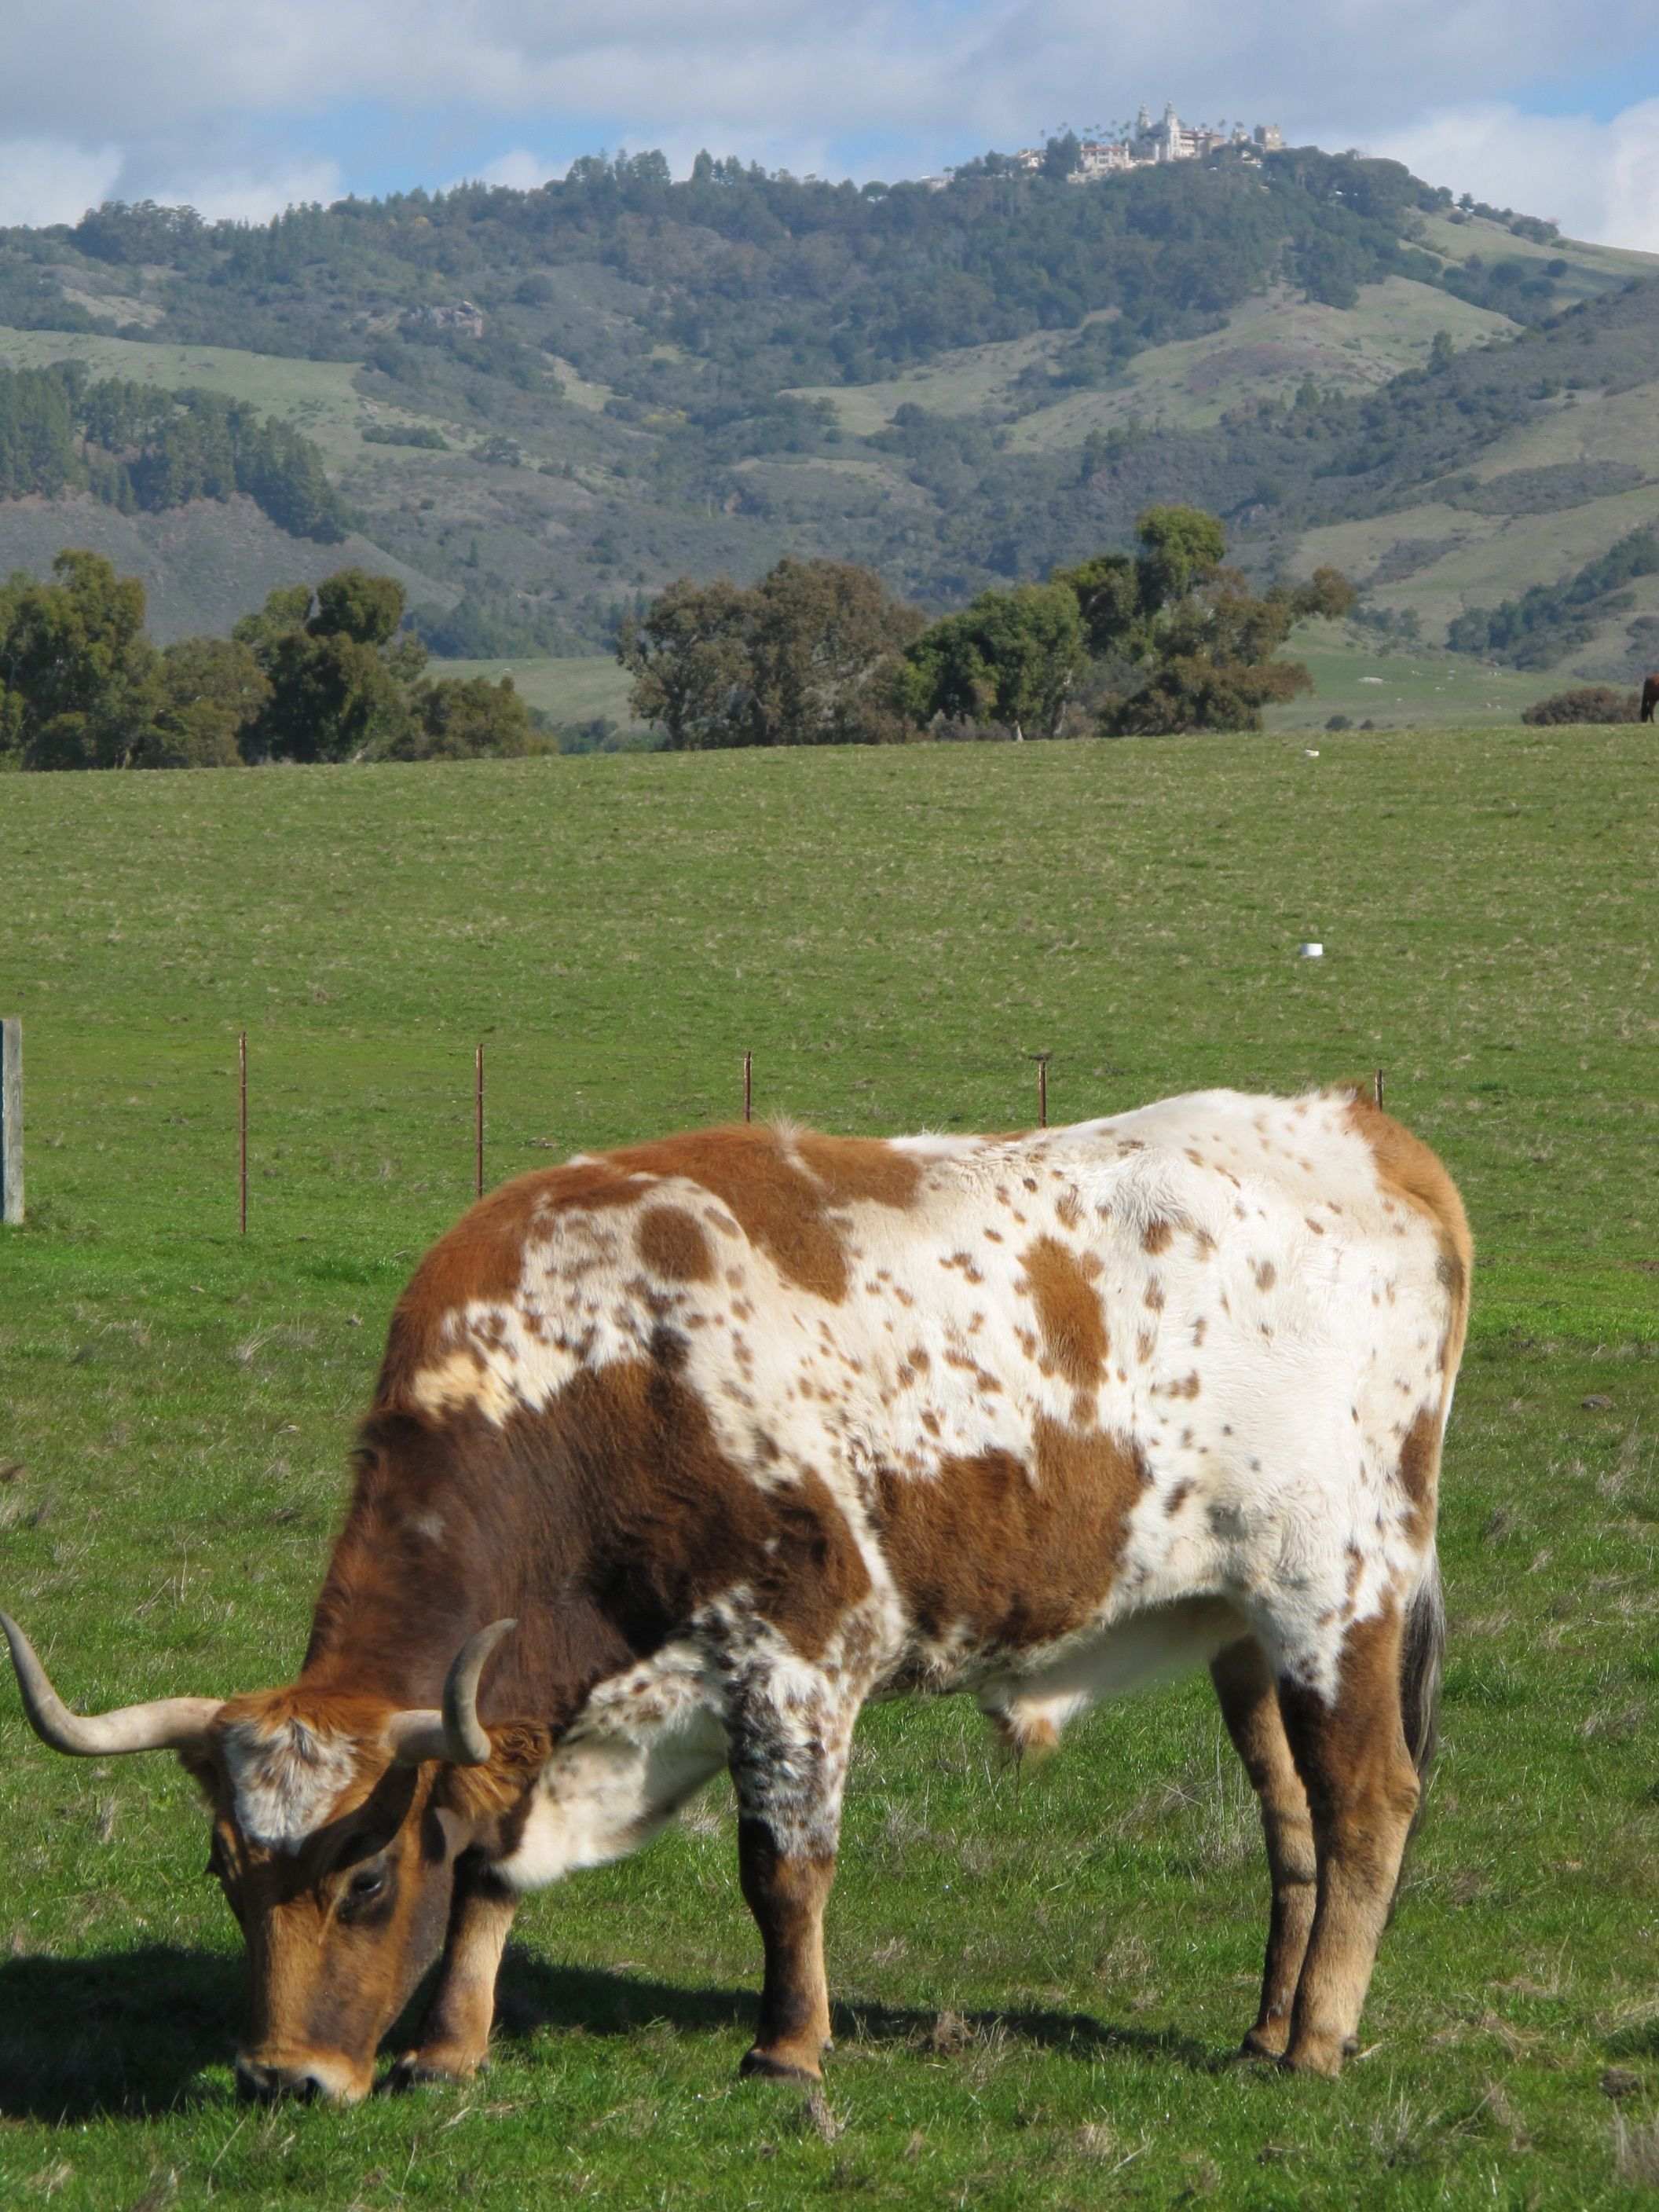 Hearst ranch cattle in front of Hearst Castle (hilltop in back).